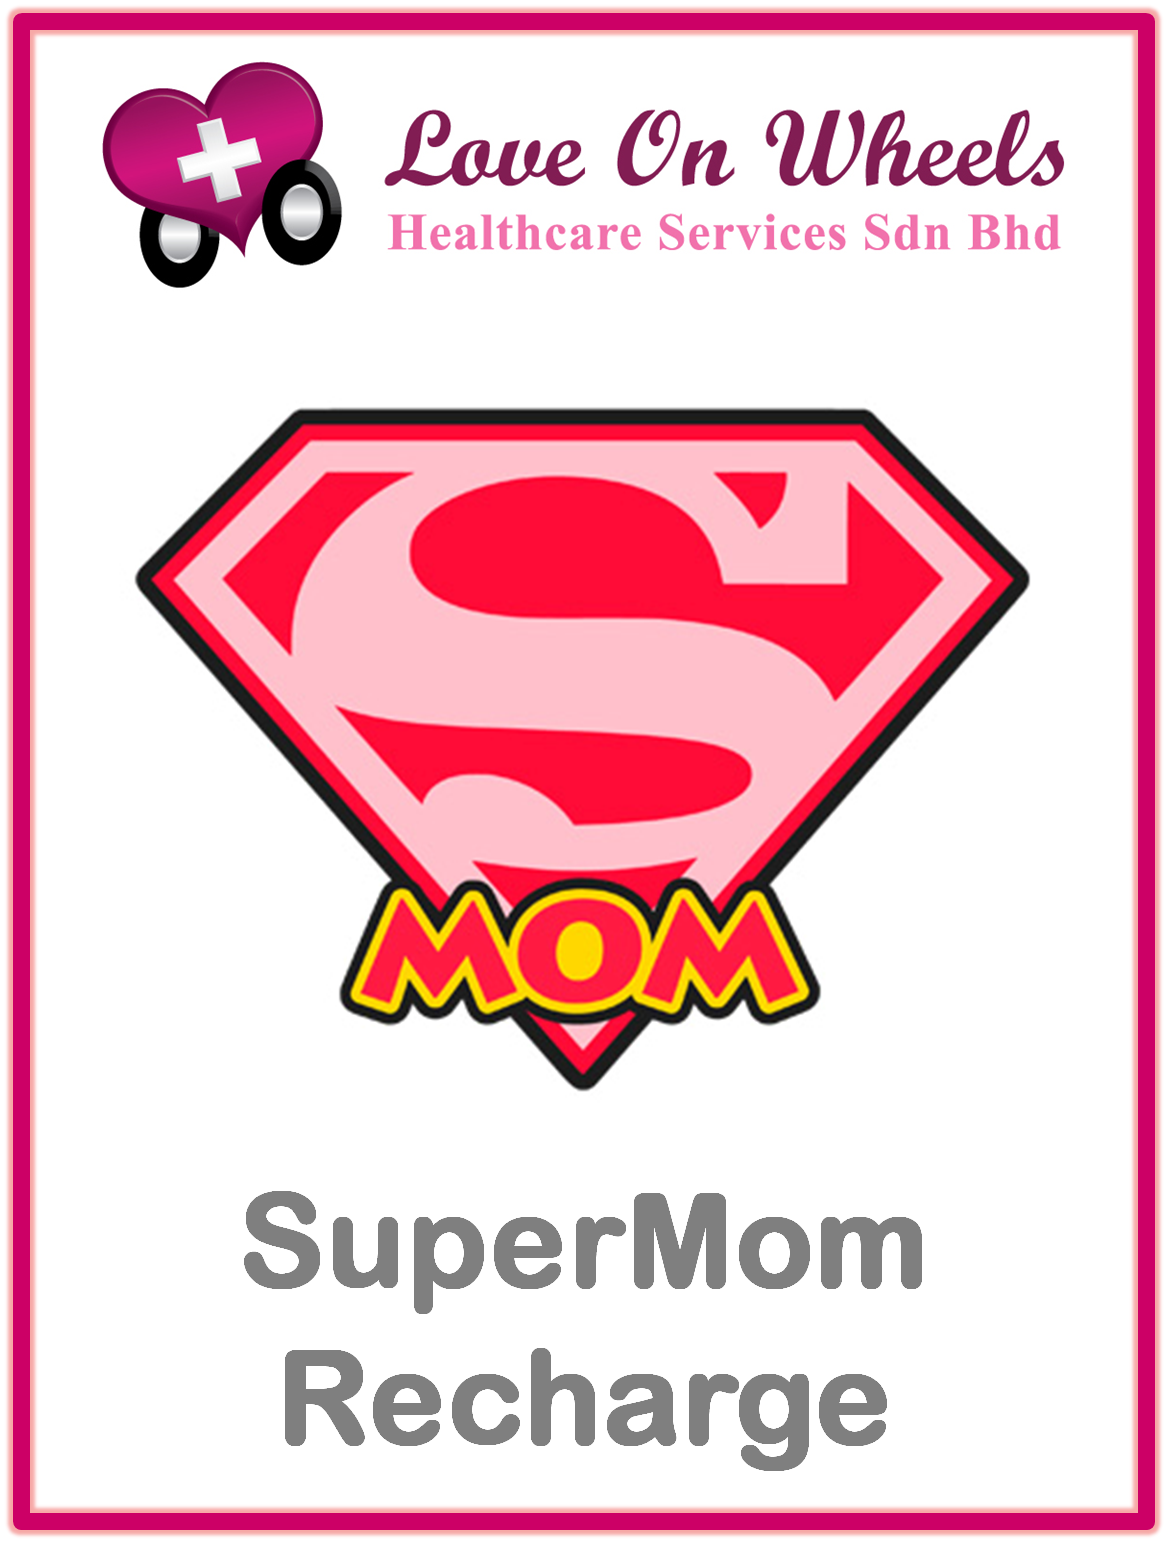 Super Mom Recharge